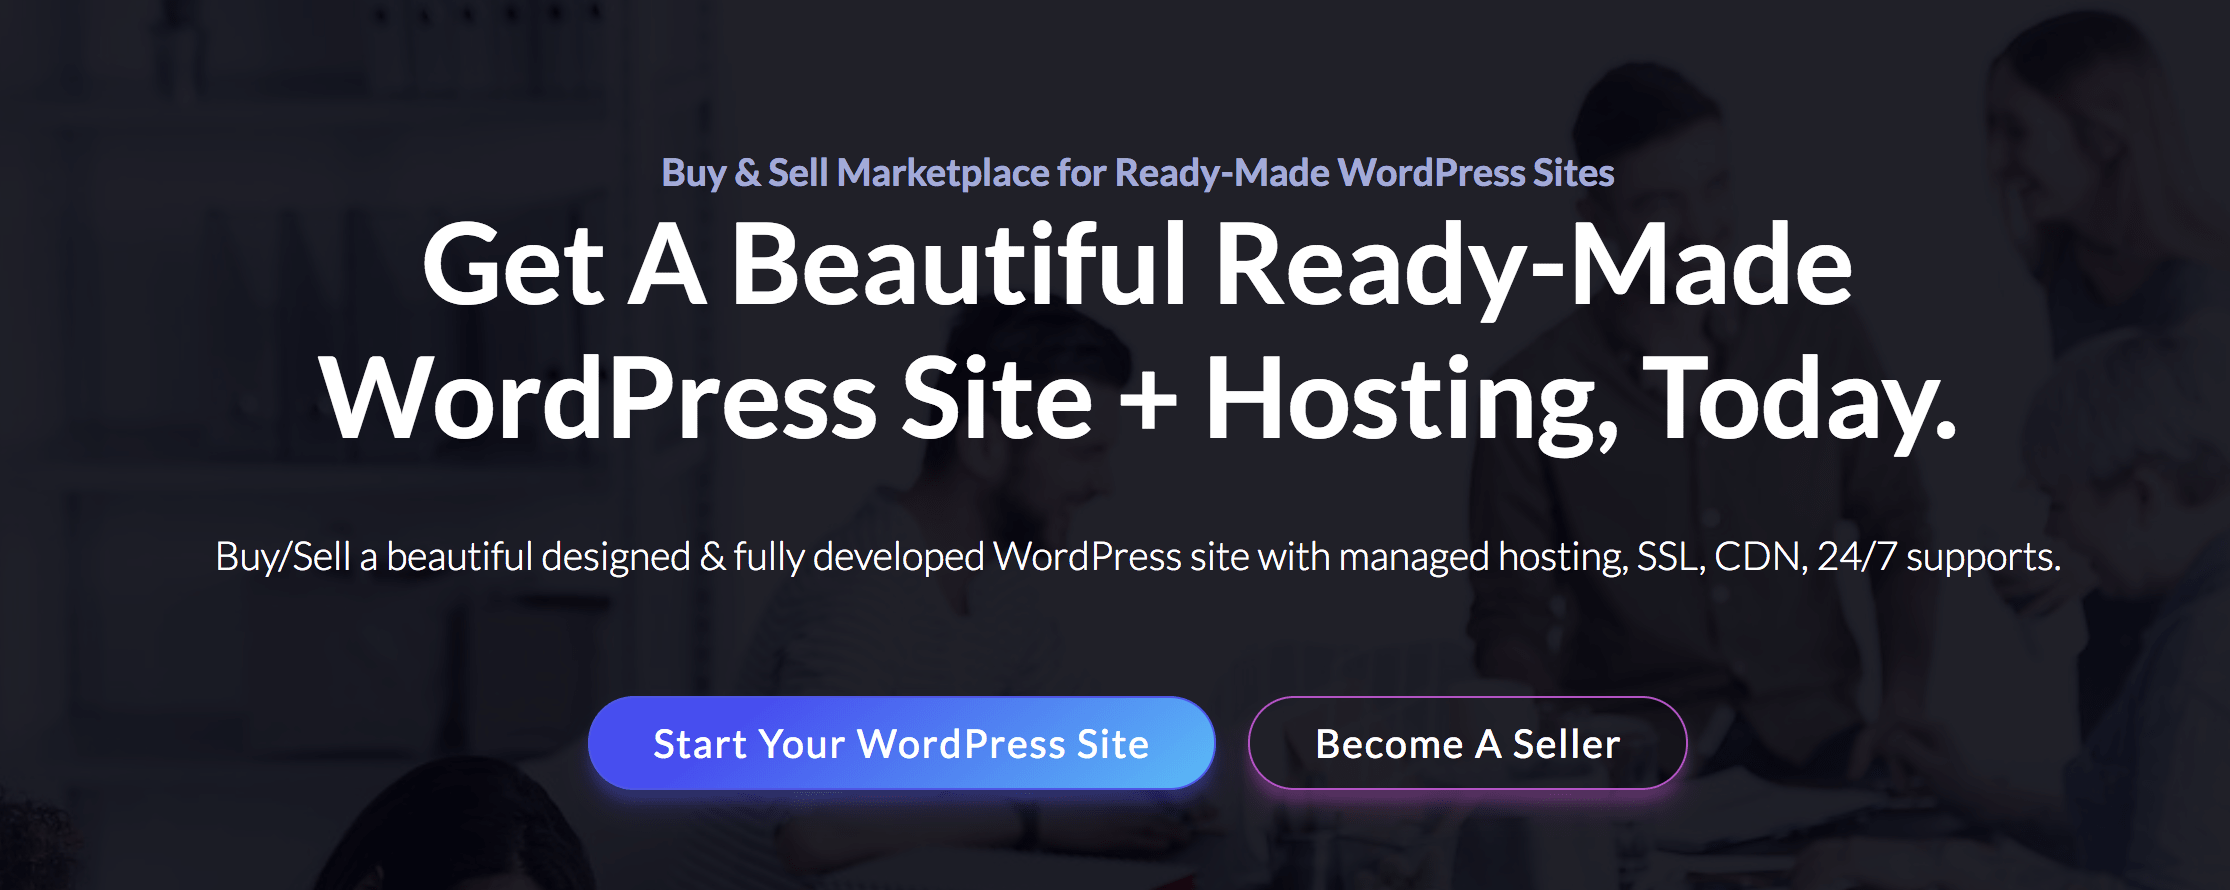 793a6895a Get Beautiful Ready-Made WordPress Sites + Hosting